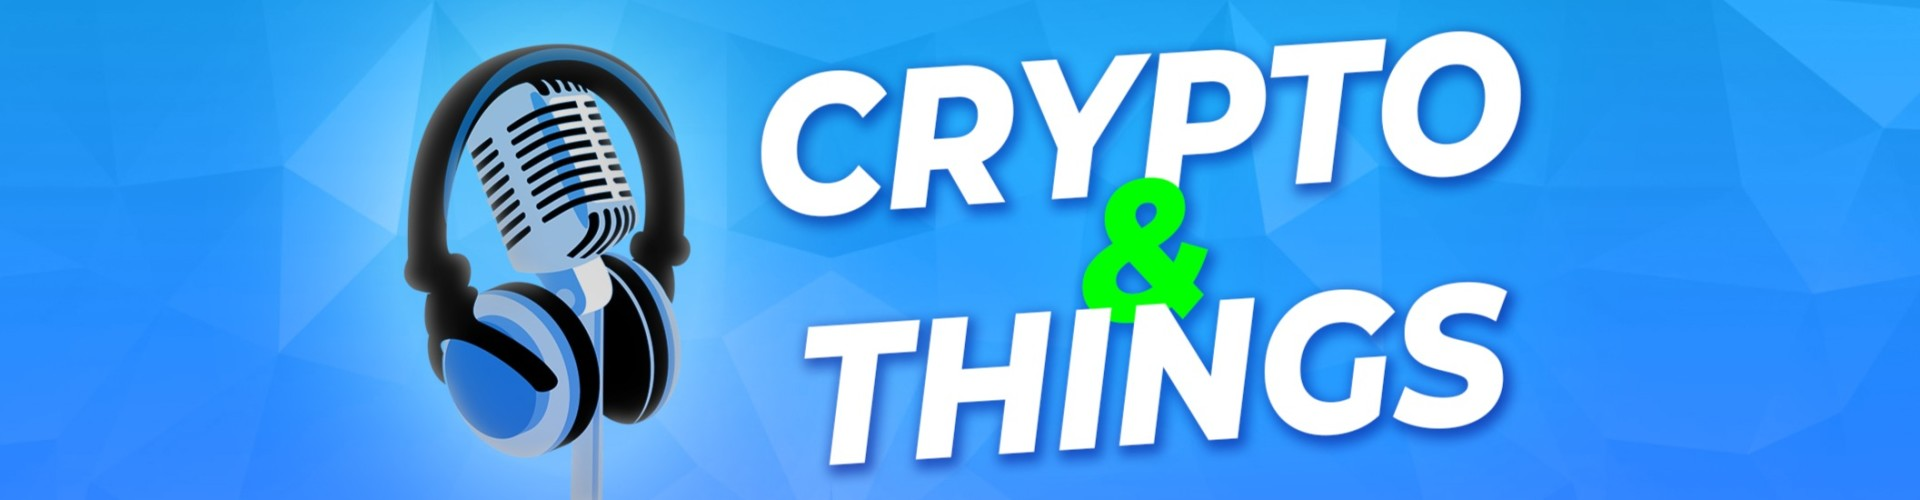 Crypto & Things